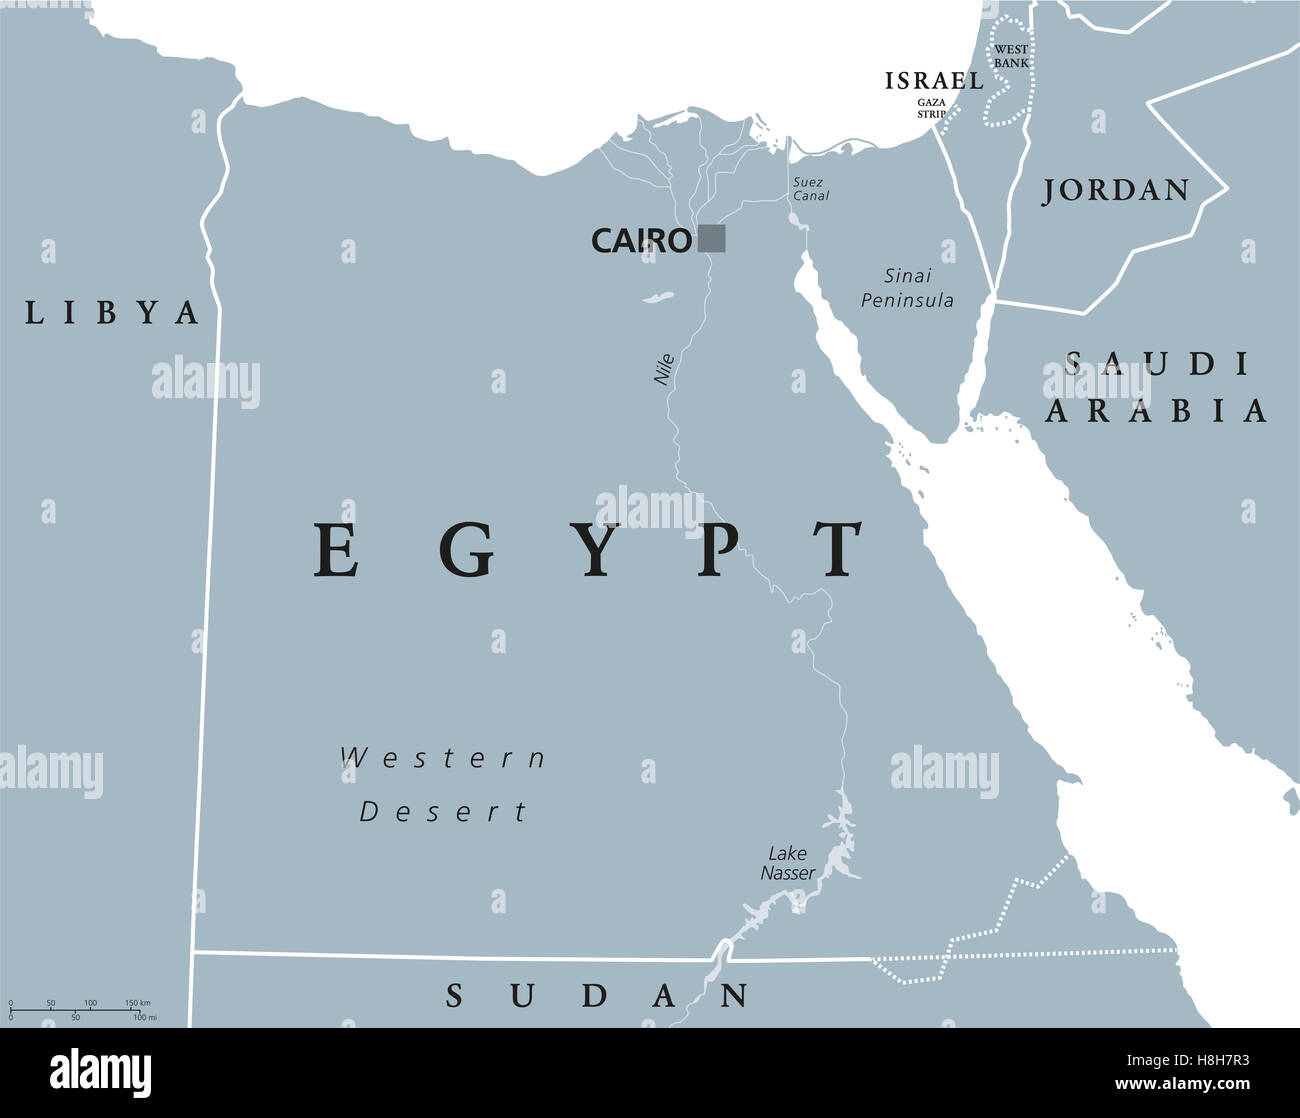 Egypt Map Stock Photos Egypt Map Stock Images Alamy - Map of egypt israel